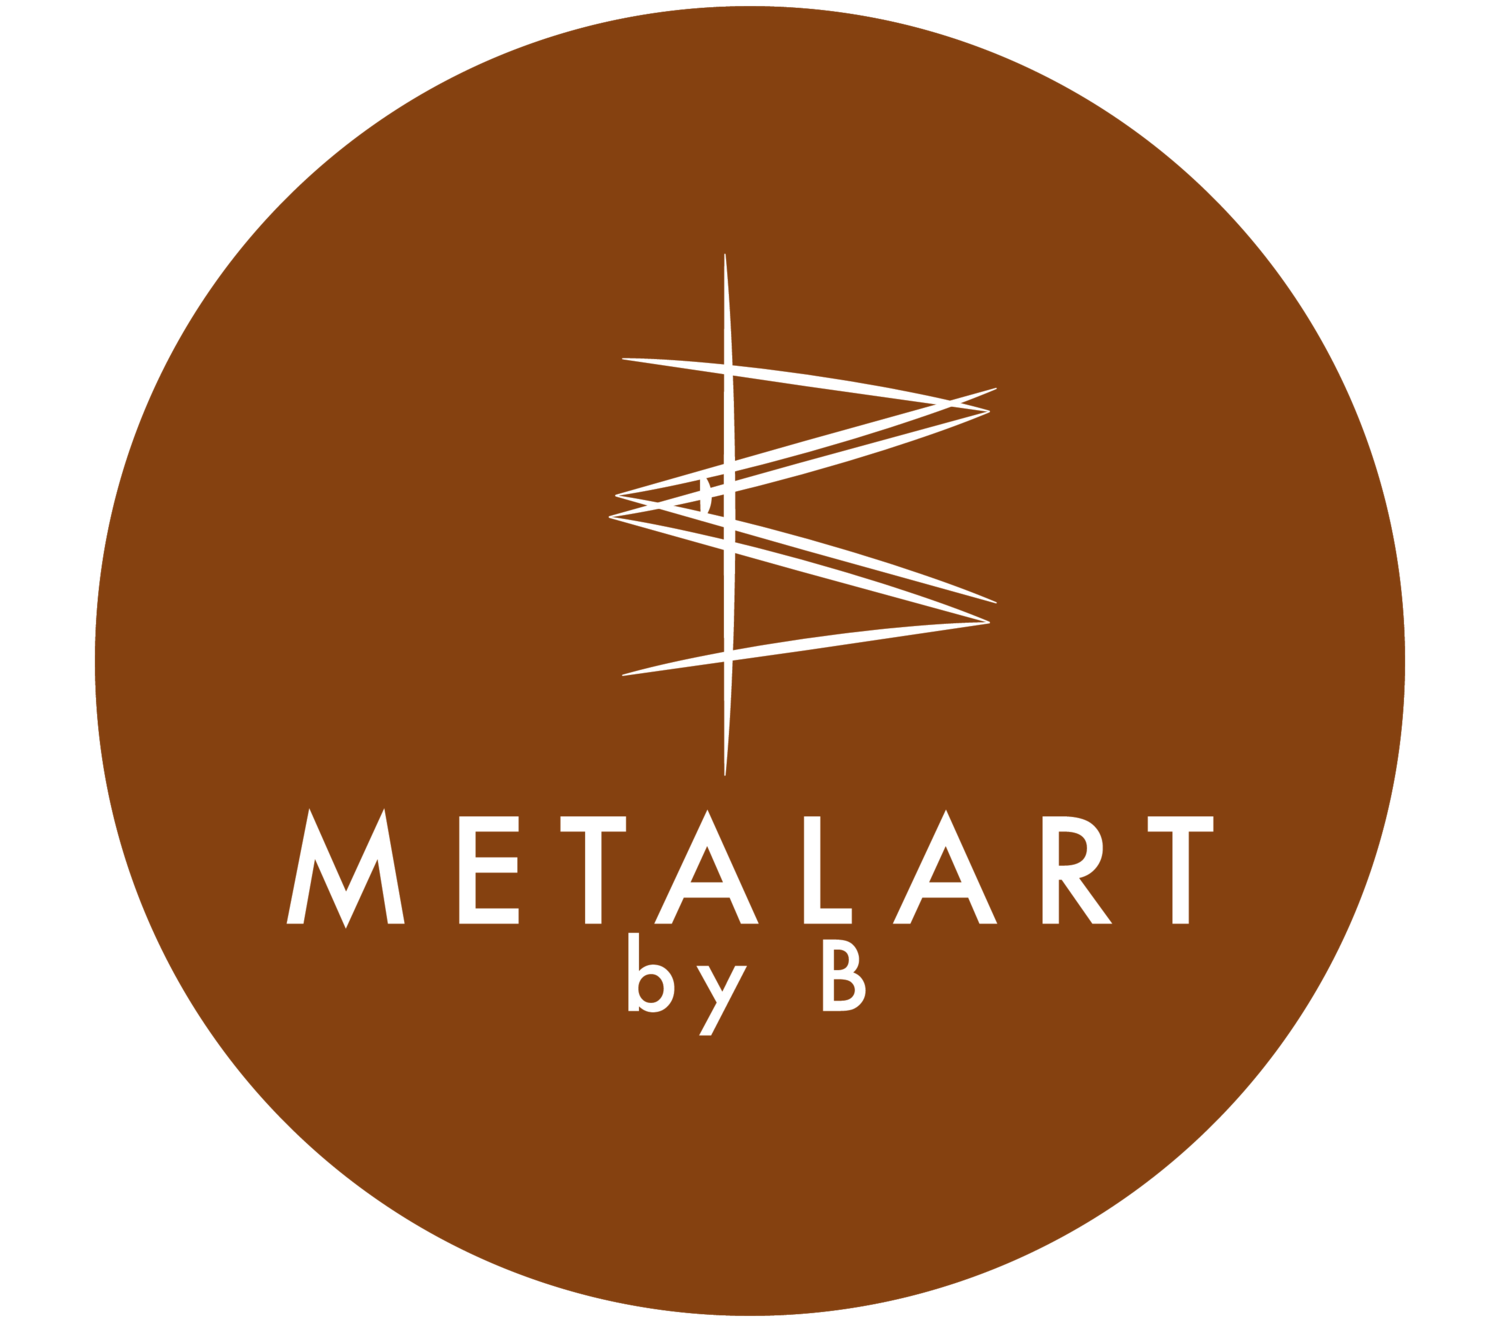 MetalArt By B